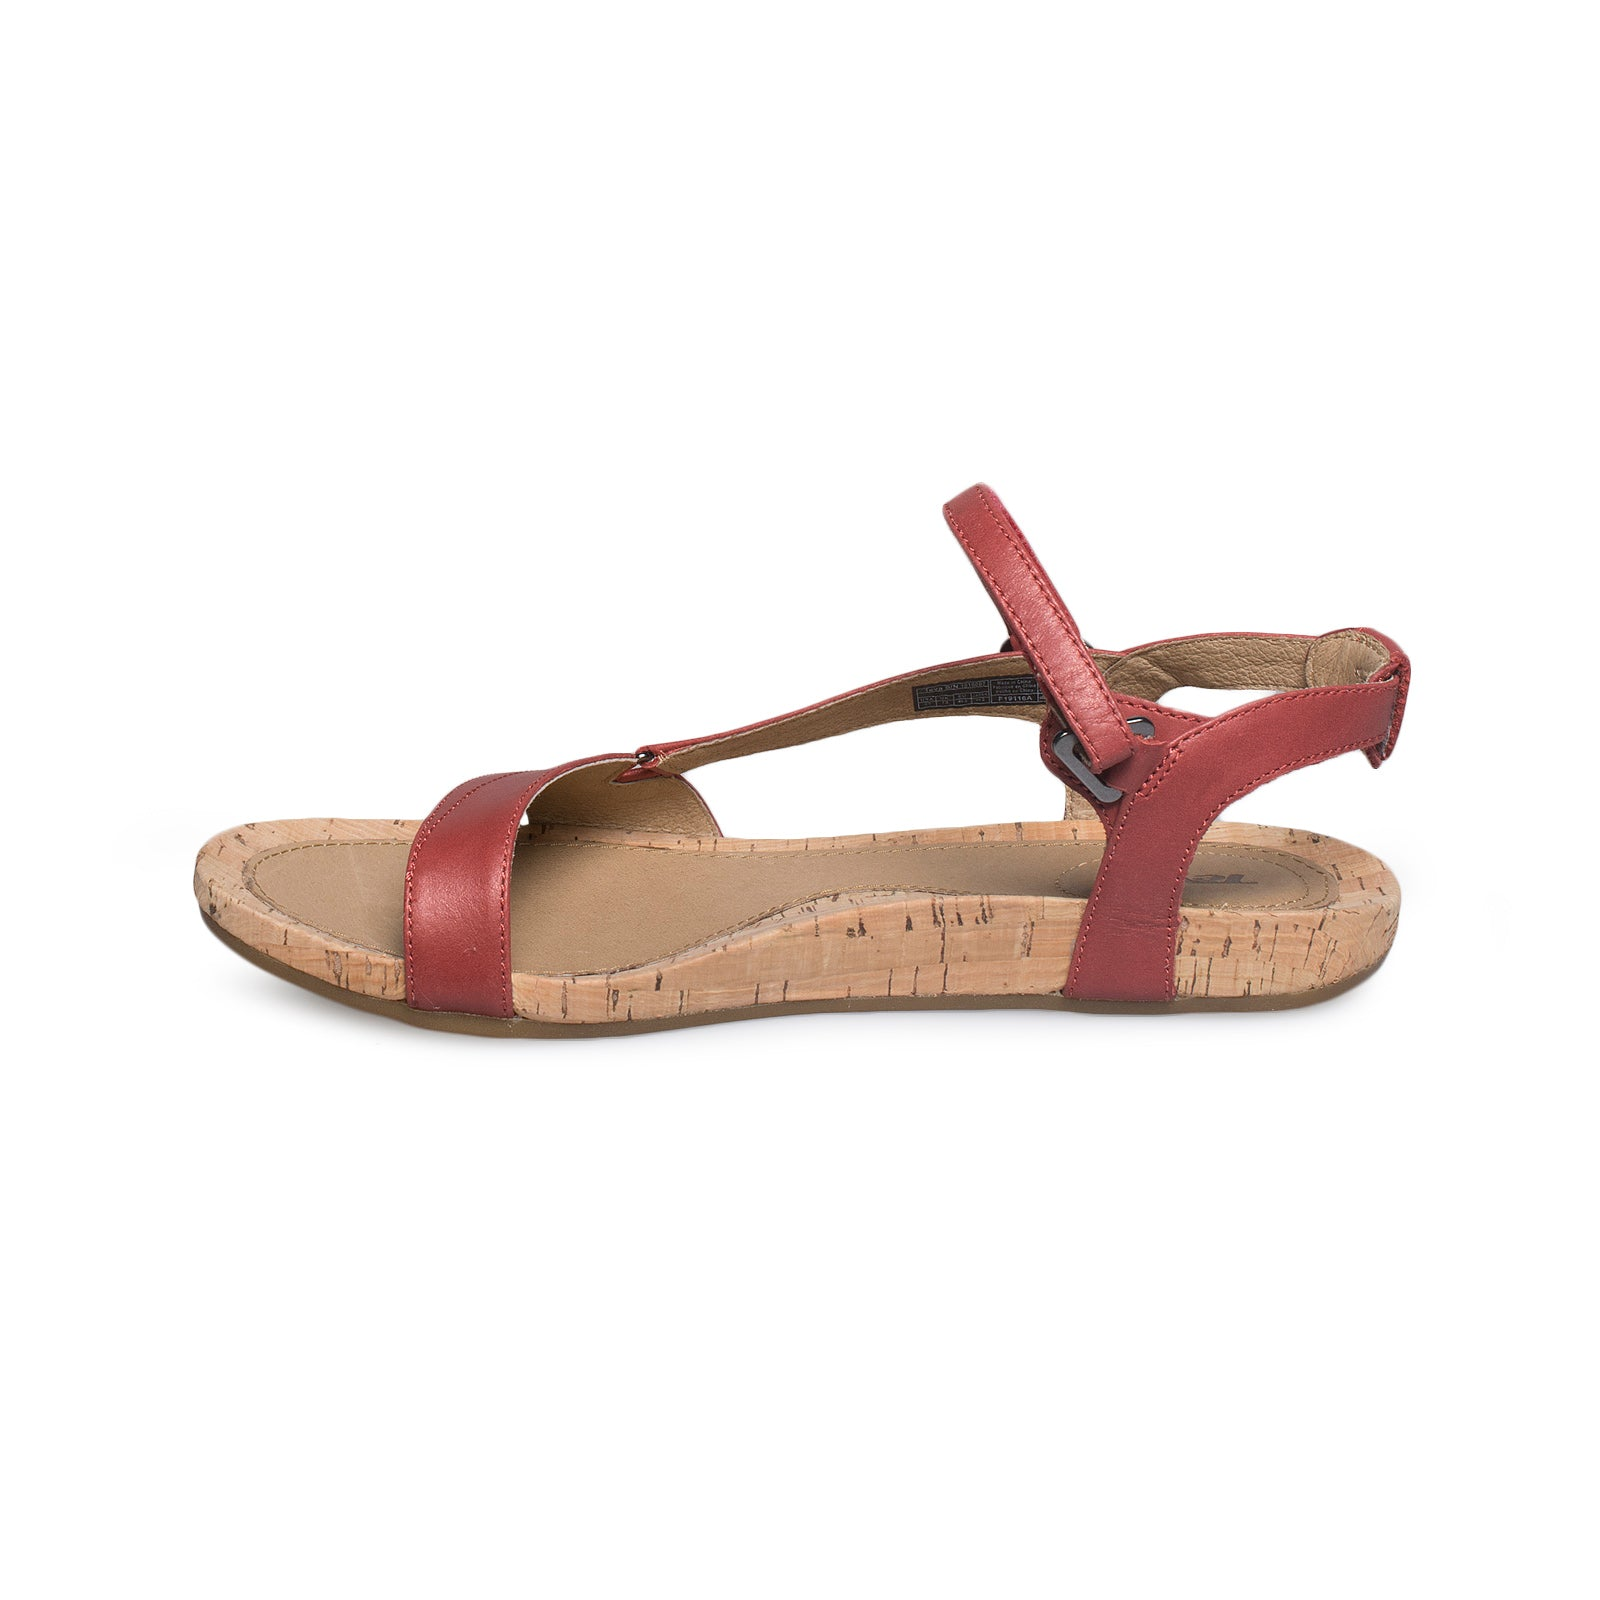 277d0903b4bc TEVA Capri Universal Pearlized Red Sandals - Women s - MyCozyBoots